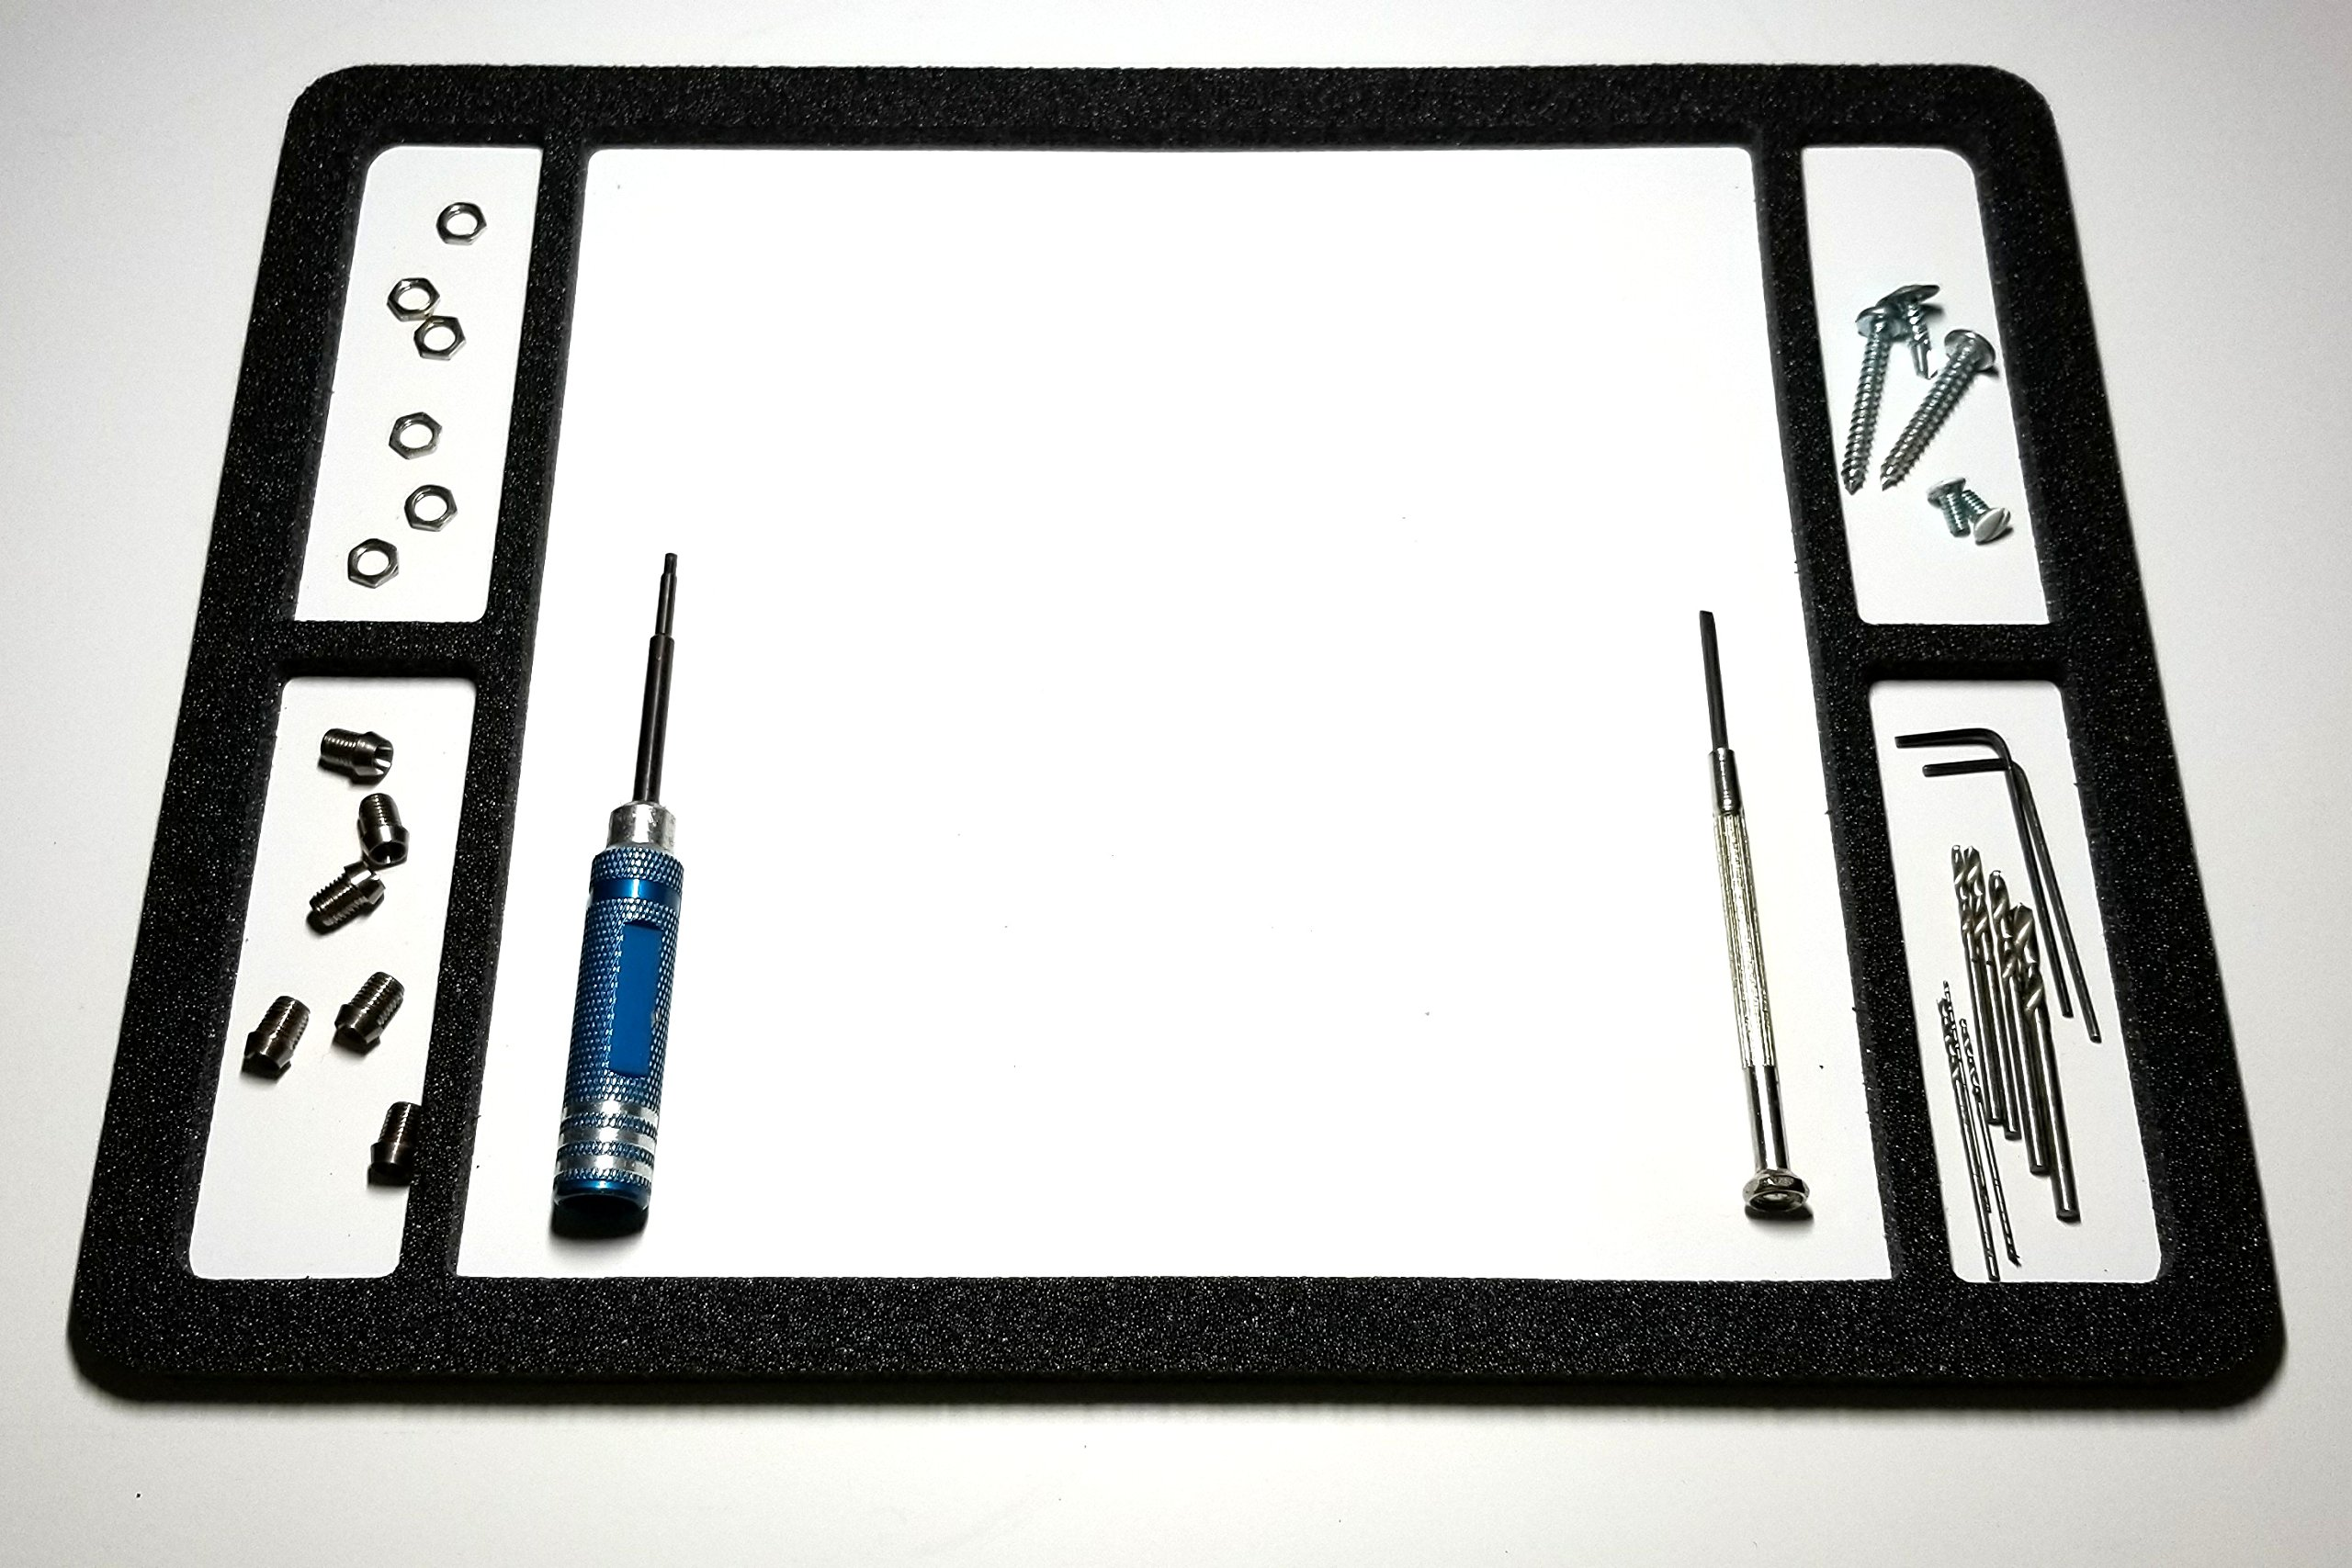 Magnetic Mat, Screw Catcher with 4 Side Corrals (12''x9'') 6 Mil Mat, Highest (MGO) magnetism among sheet mats. Cell Phone Repair, Gun Cleaning, Jewelry, RC, Electronics. Magnetic Work Mat